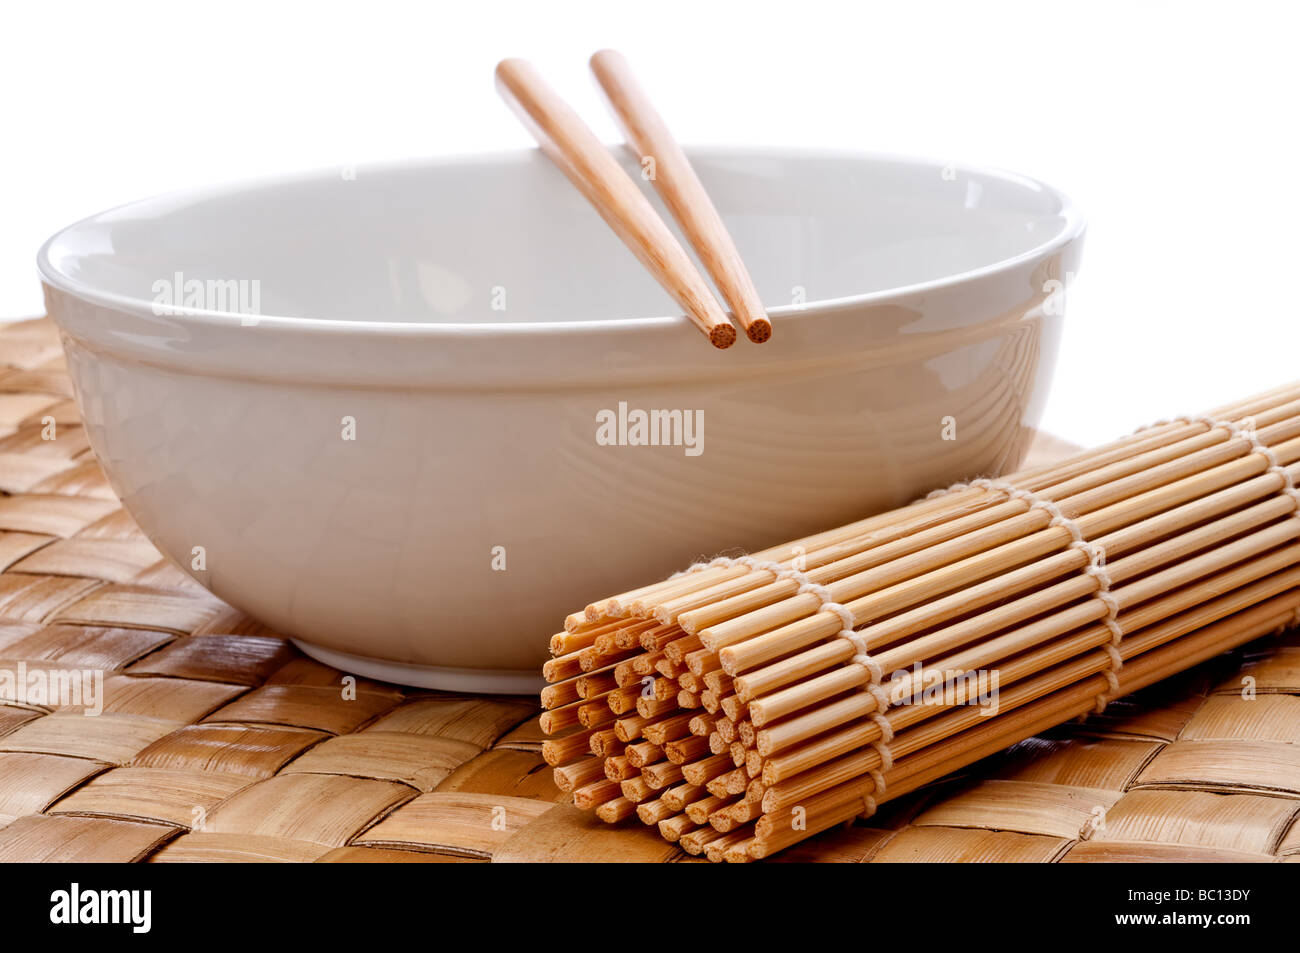 a horizontal image of a pair of chopsticks on a white bowl with a suhi rolling mat on a weaved placemat - Stock Image